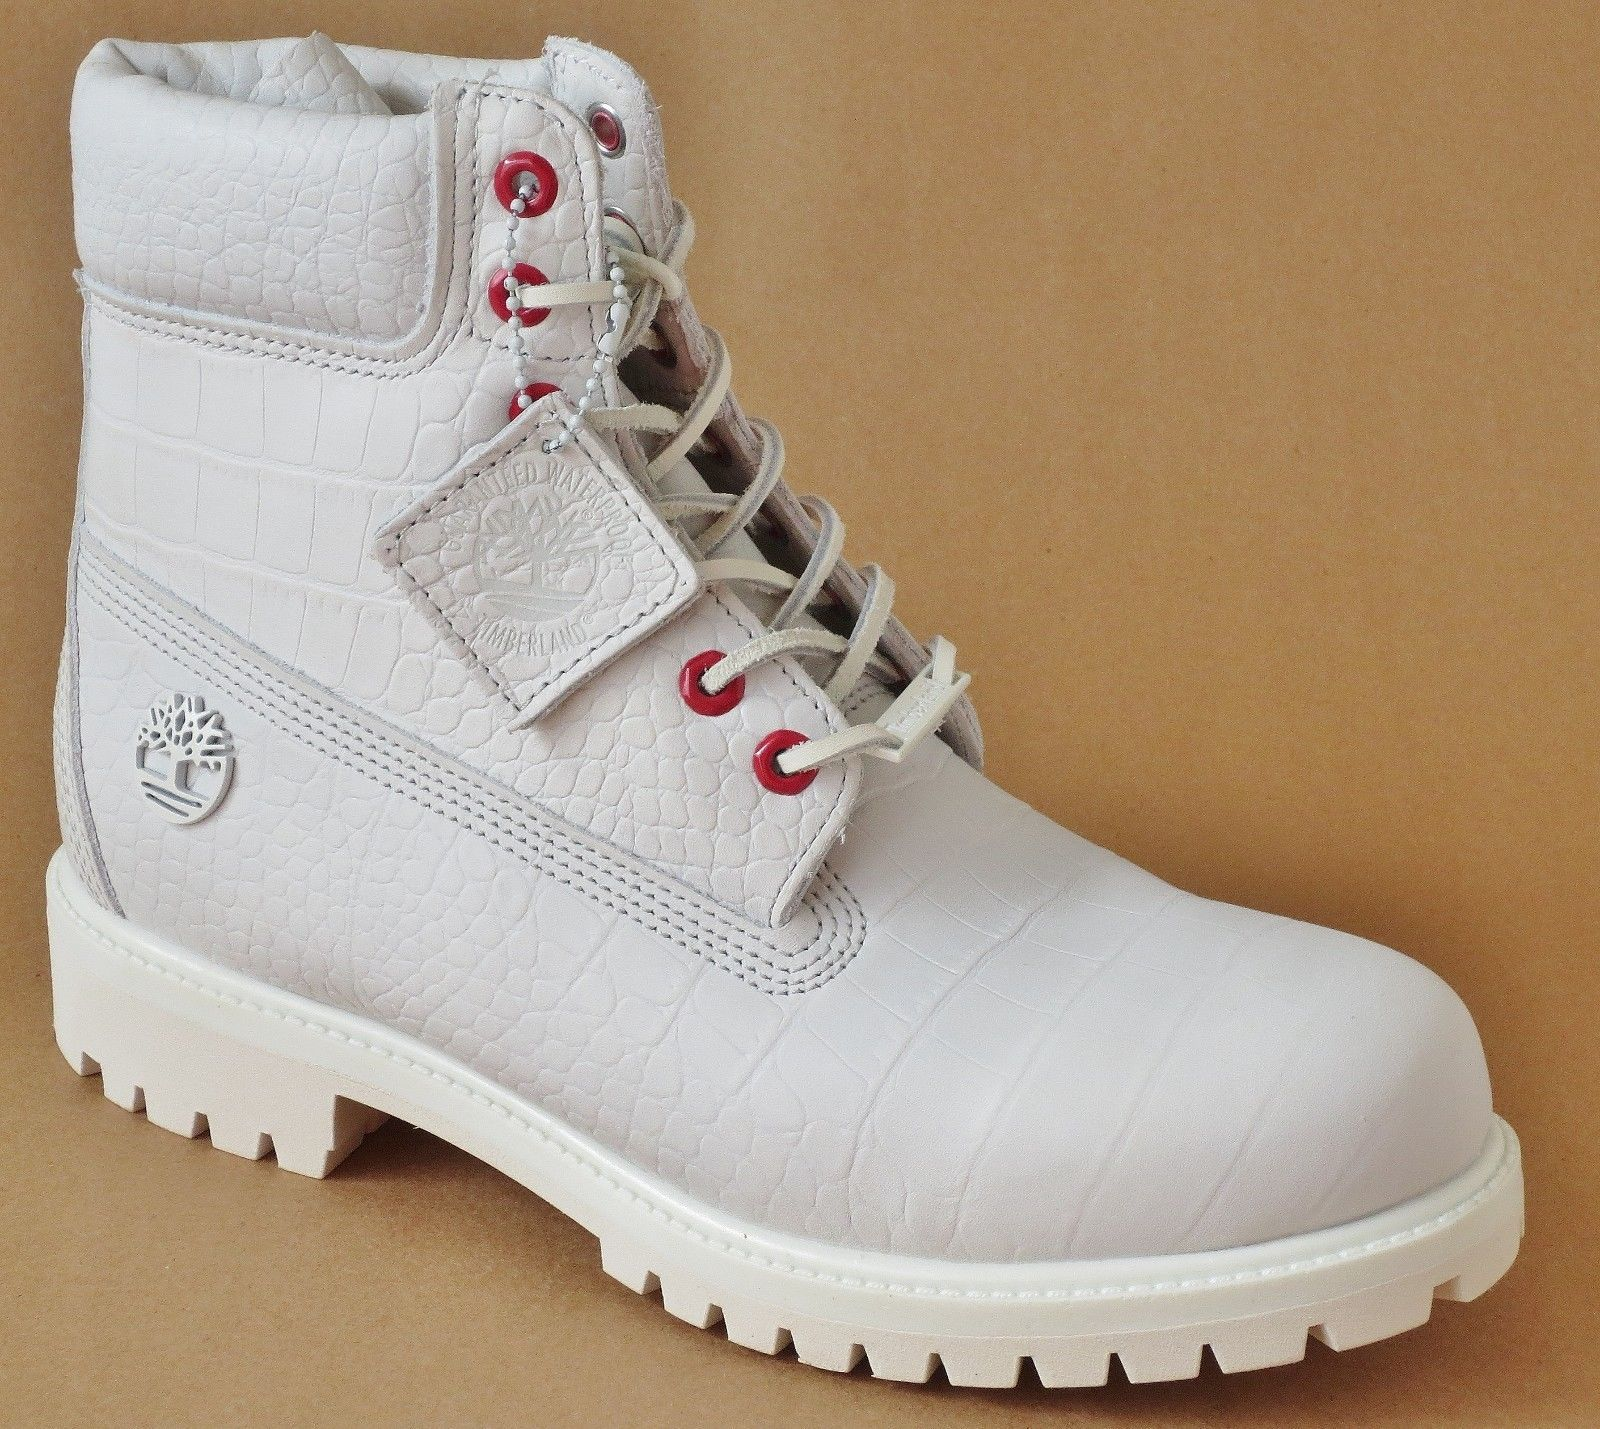 Timberland | Men's Boots Limited release | Timberland boots